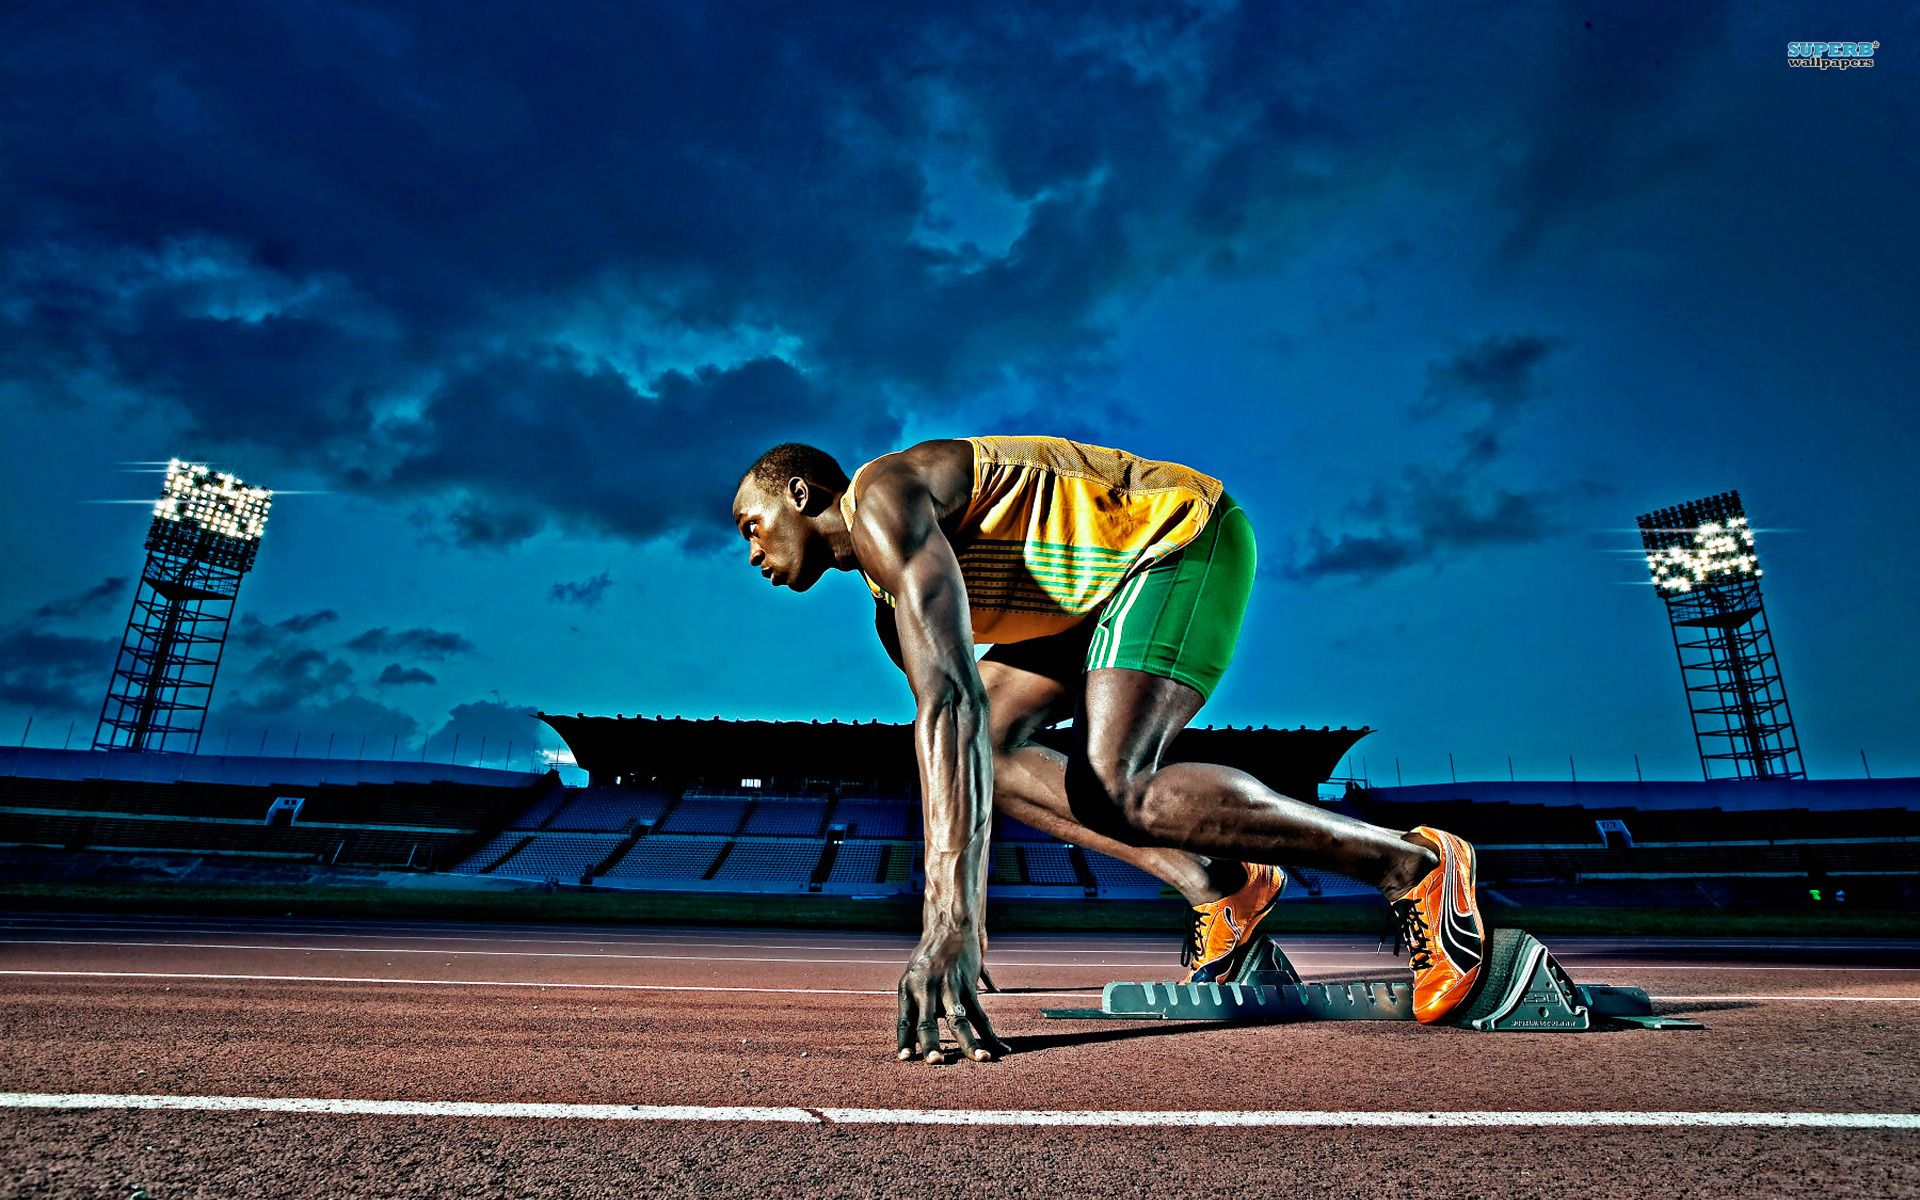 usain-bolt-high-quality-background.jpg (1920×1200)